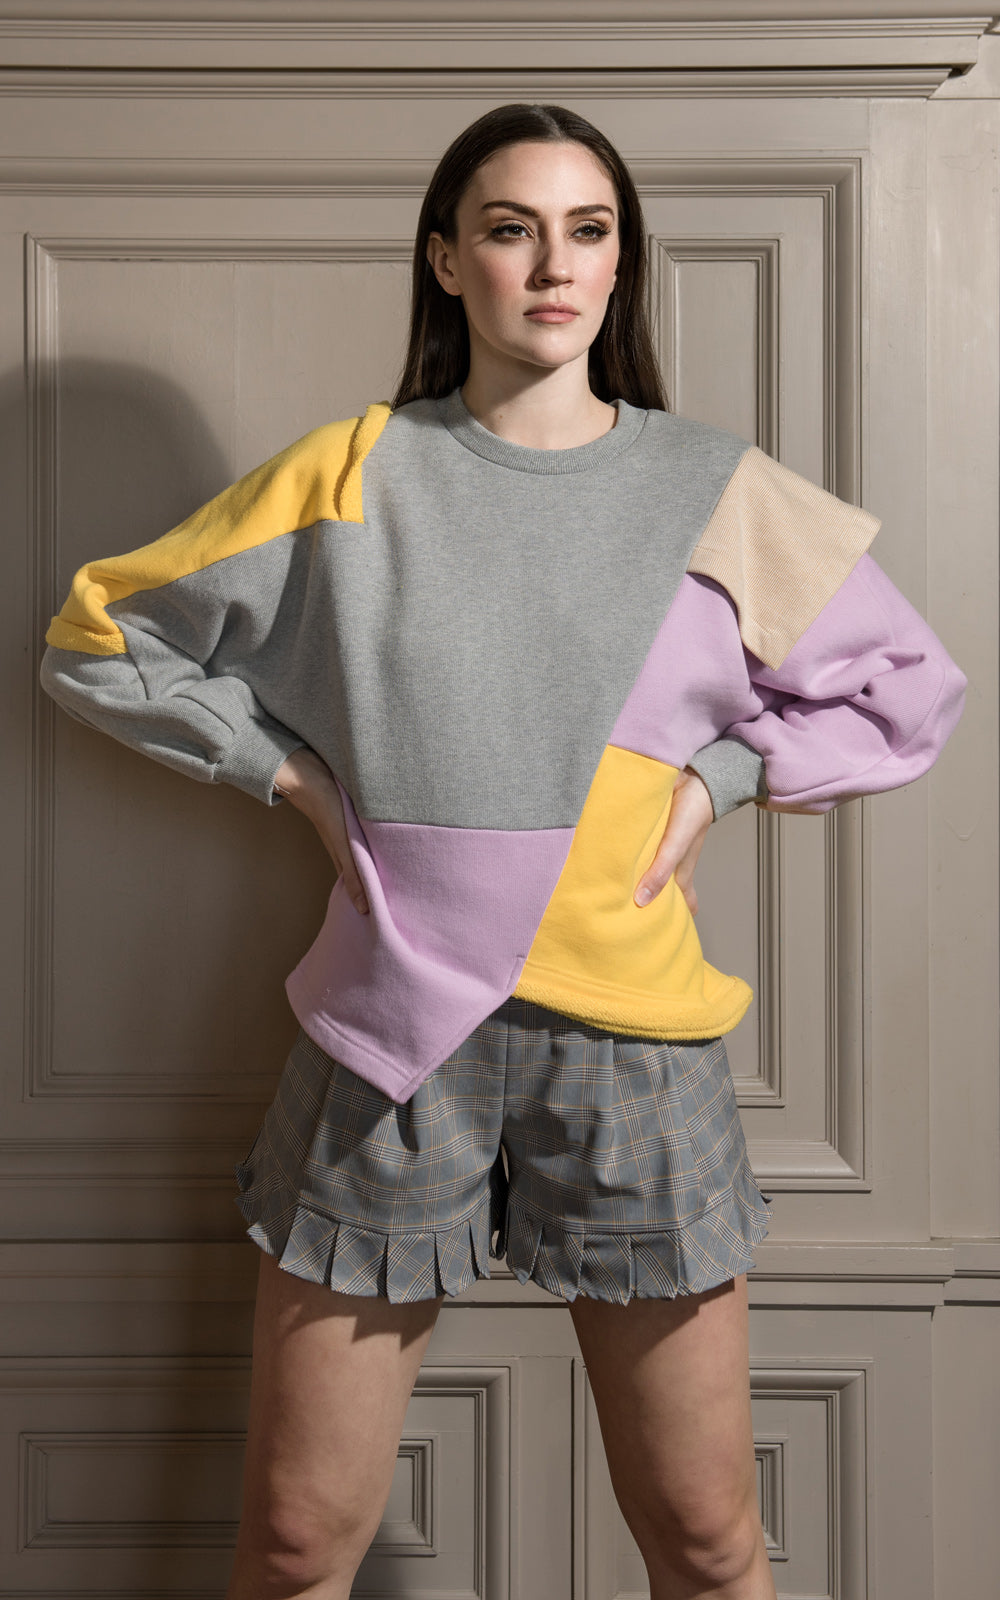 LIE Collection Asymmetrical Colorblock Sweatshirt Model Grey